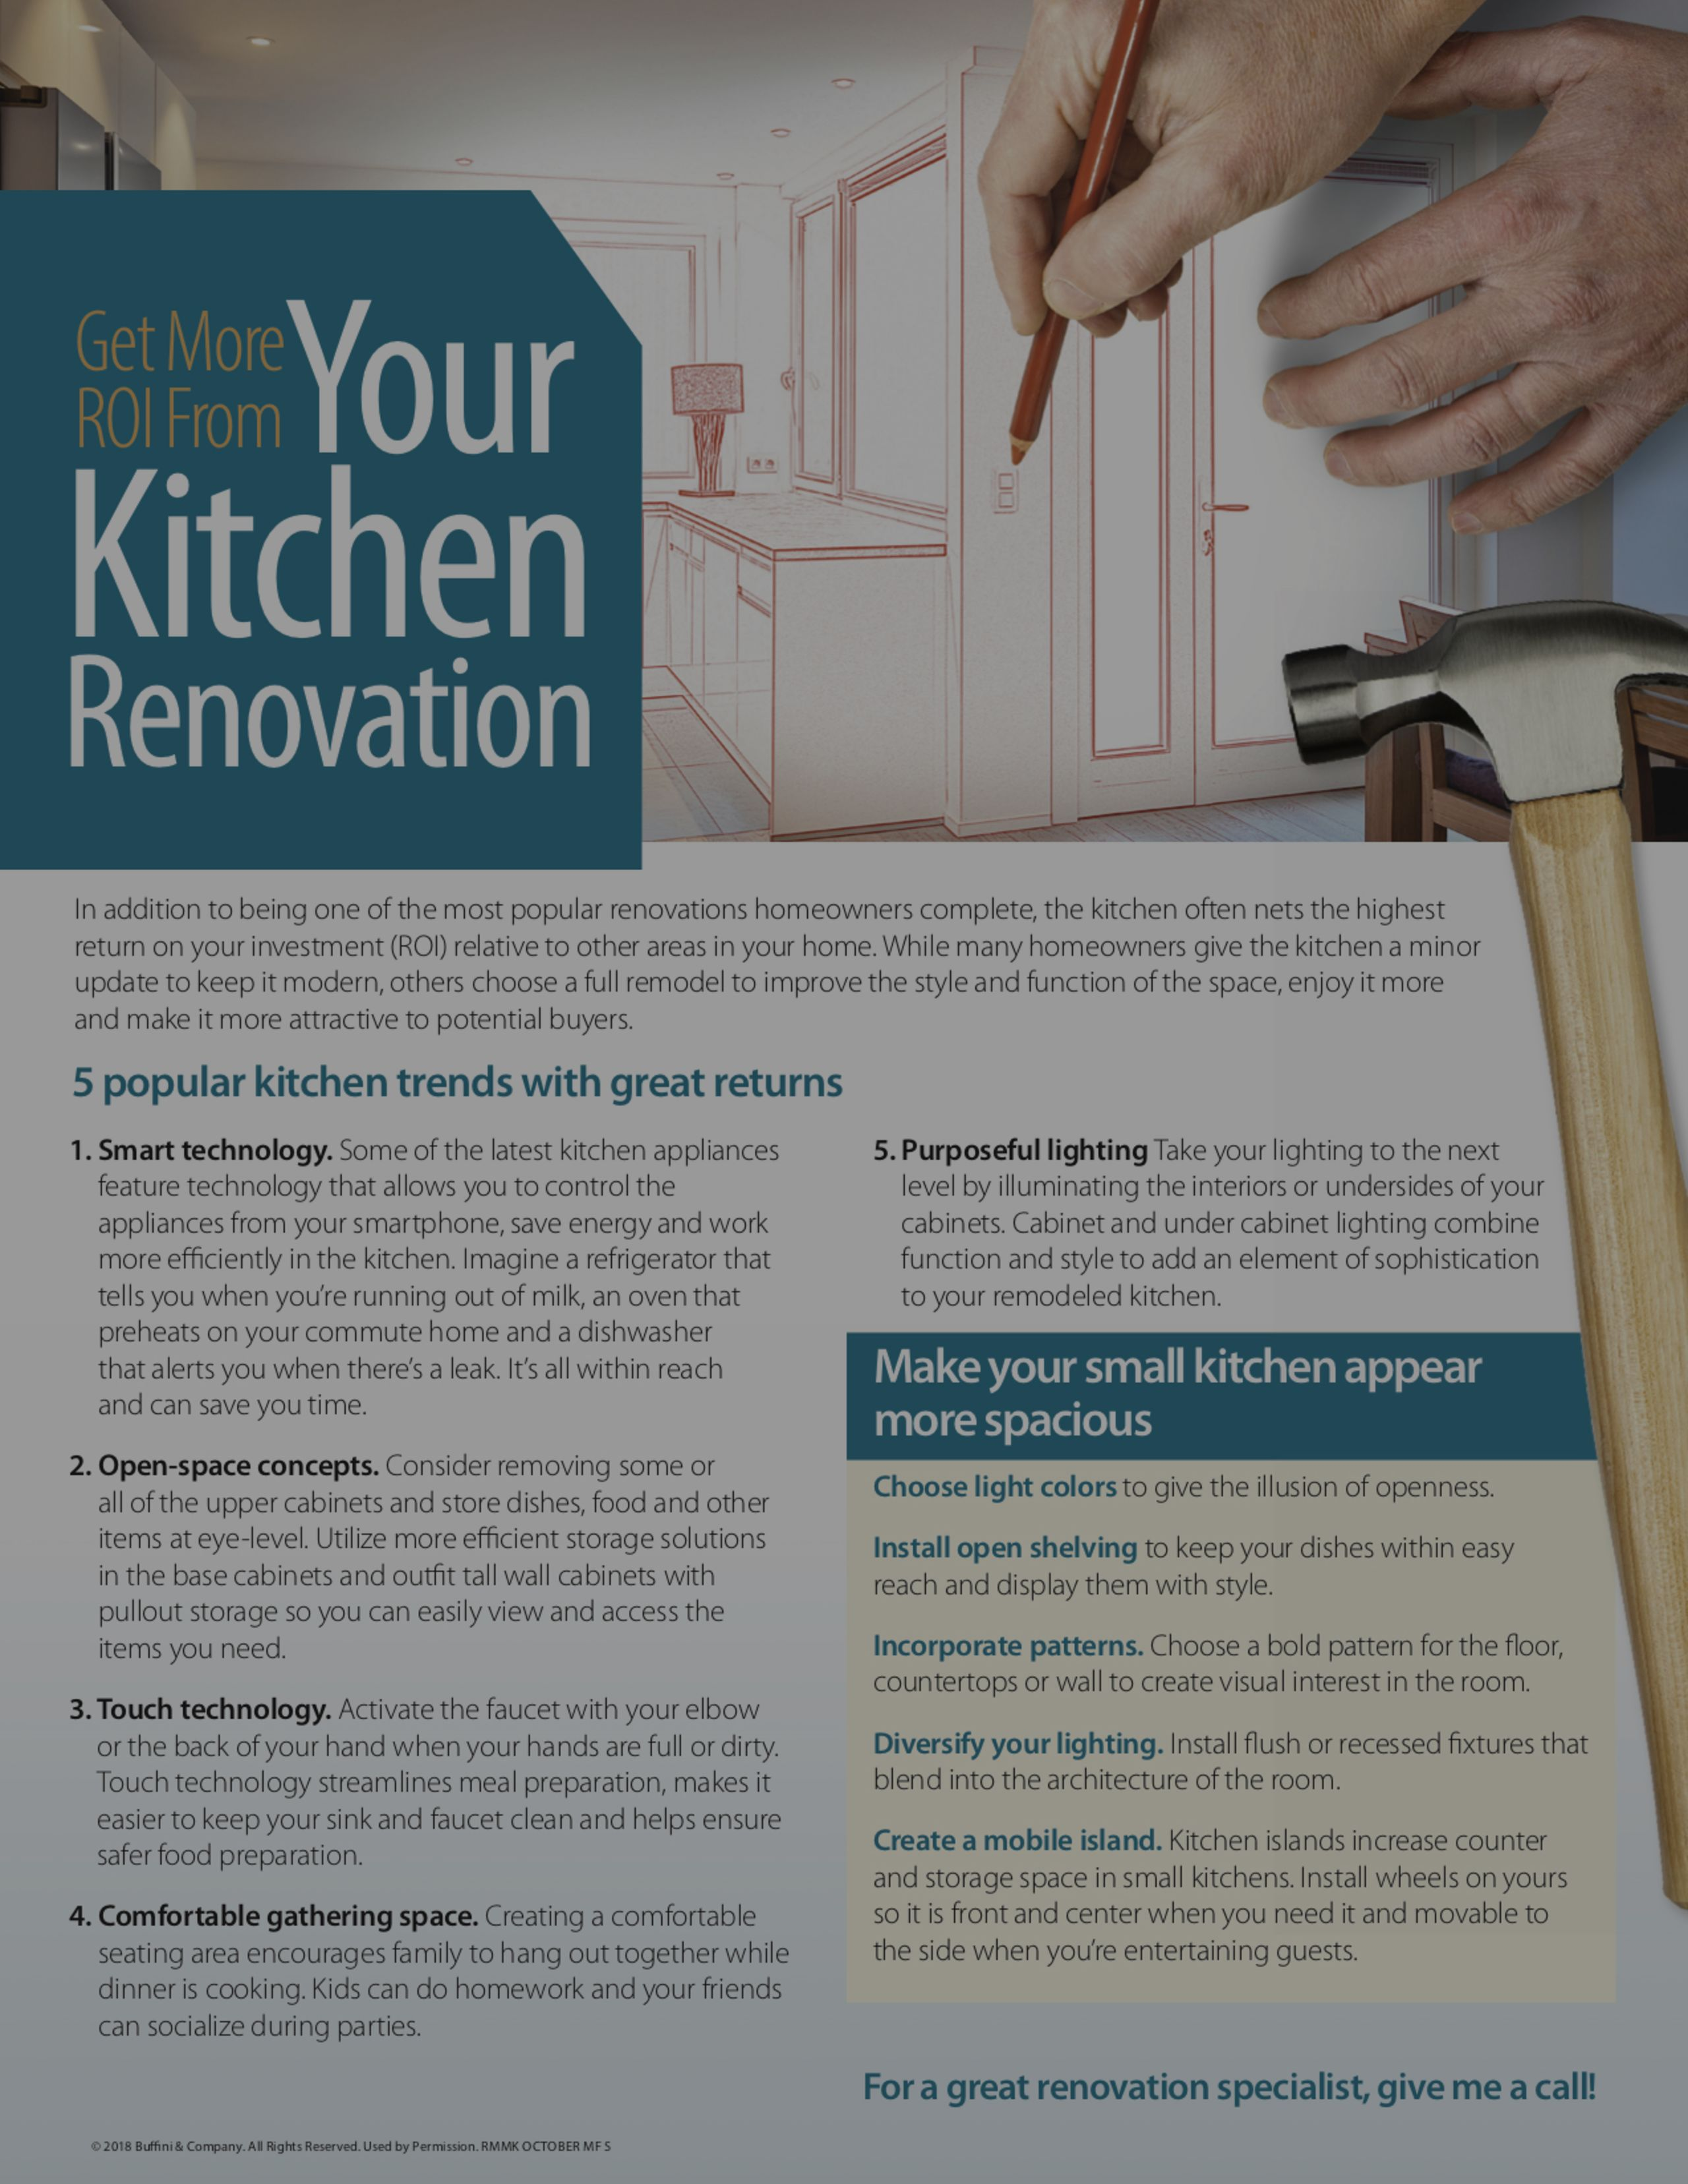 Get More ROI From Your Kitchen Renovation